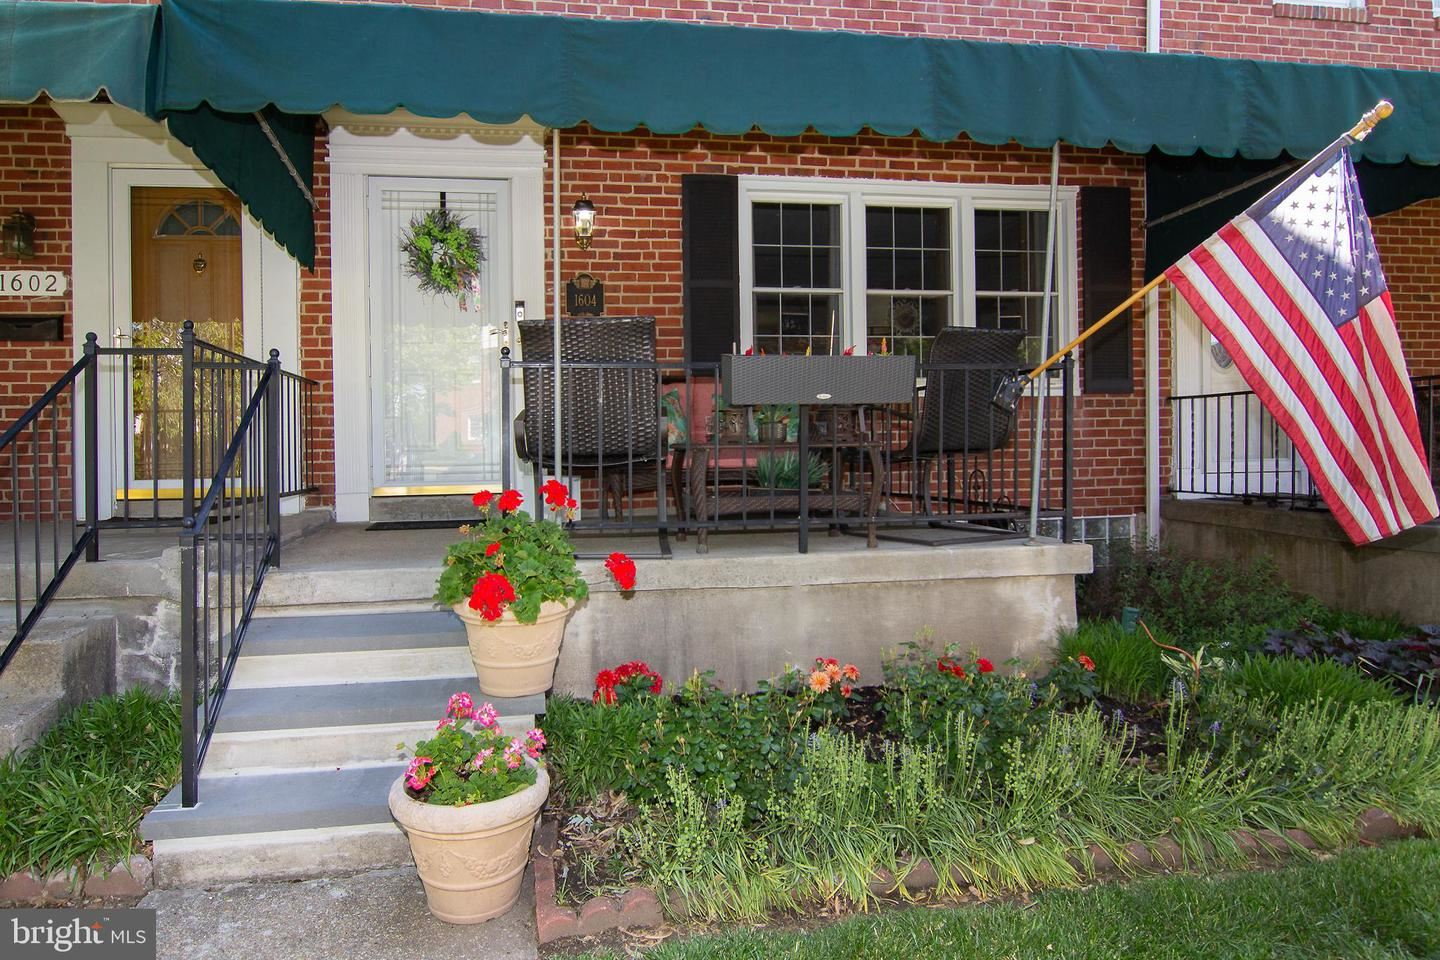 1604 GLEN KEITH BLVD, Baltimore, MD 21286 - MLS#: MDBC529280